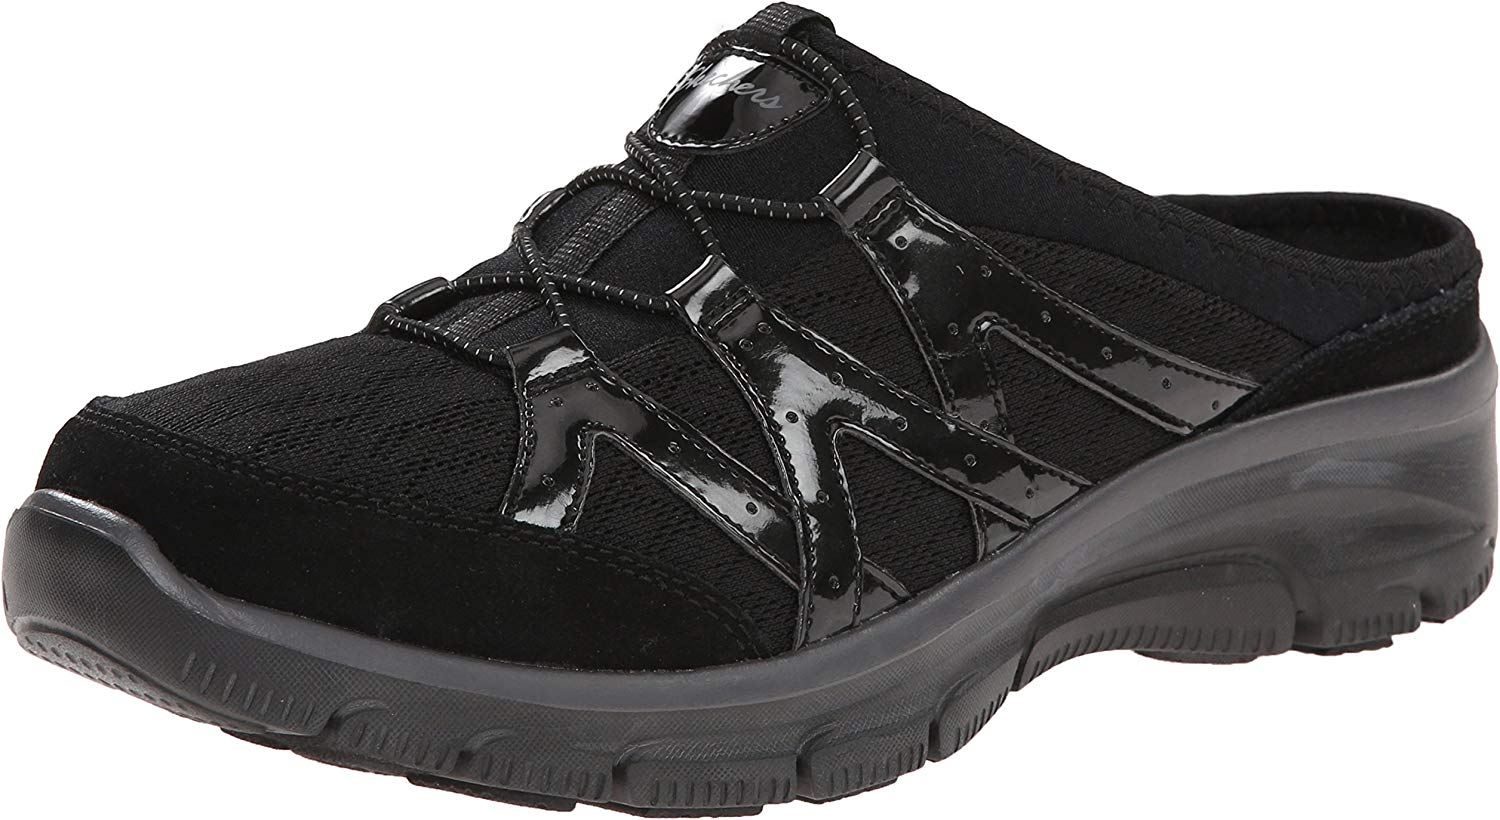 Skechers Woherren Easy Going Repute Mule,schwarz,11 M US